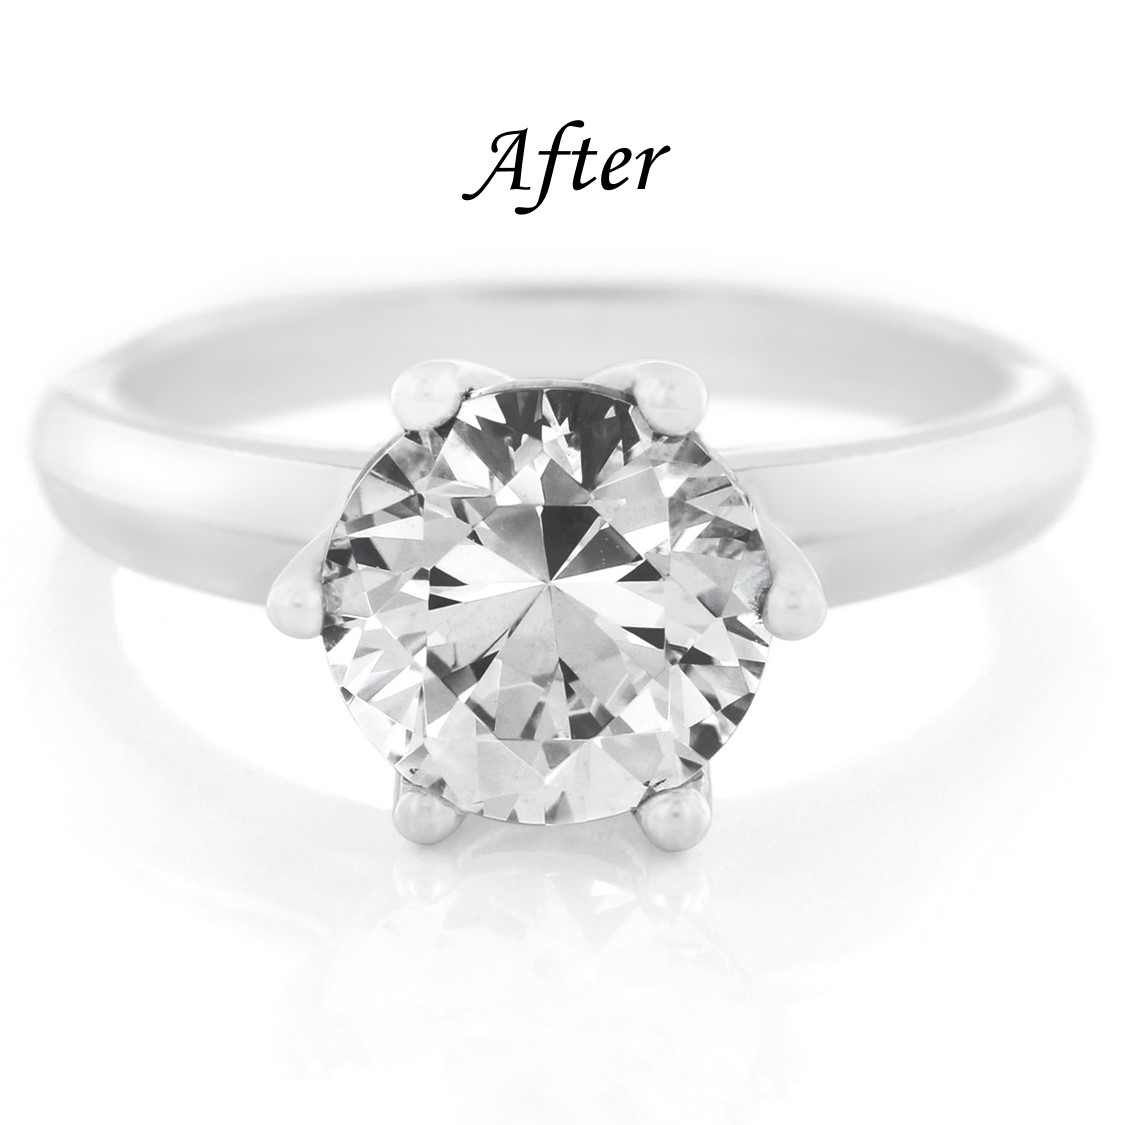 6 Ways To Reset Your Solitaire Engagement Ring - Upgrade Center Stone